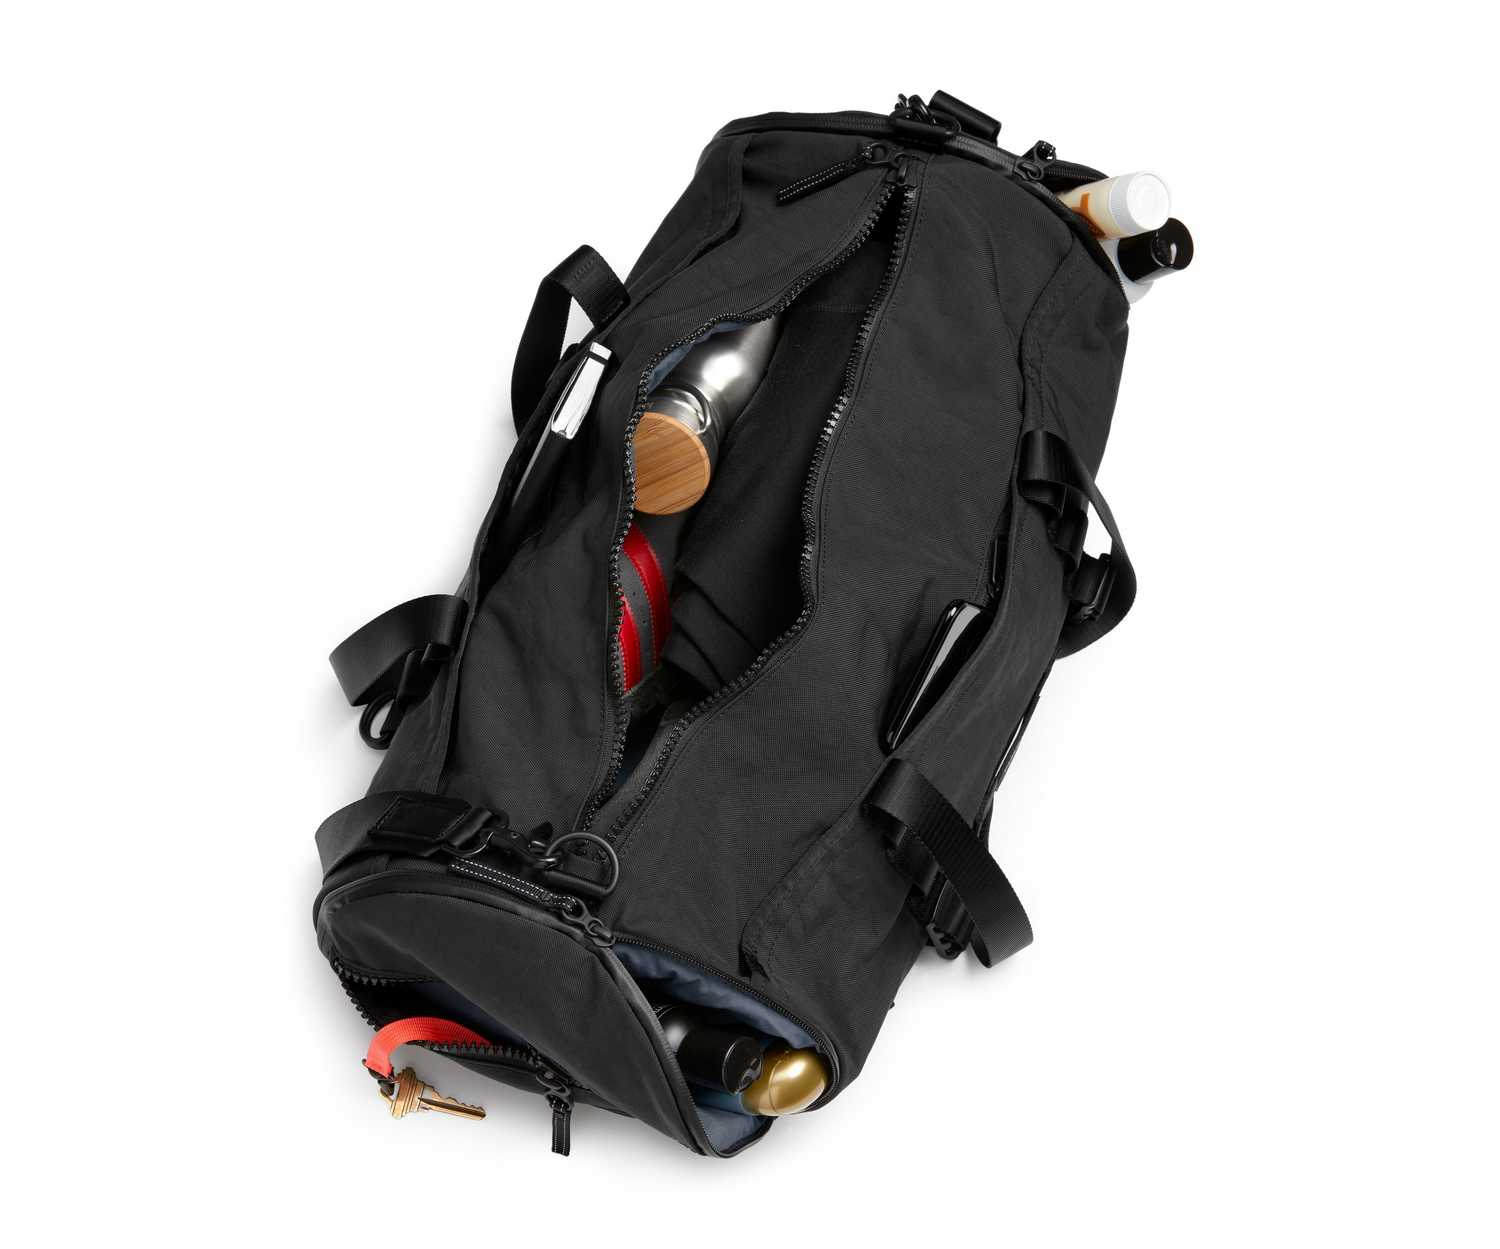 Crafted With 1000d Sail Cloth For A More Durable Feel This Amazing Bag Is Designed To Go Everywhere You The Gym Or On Plane